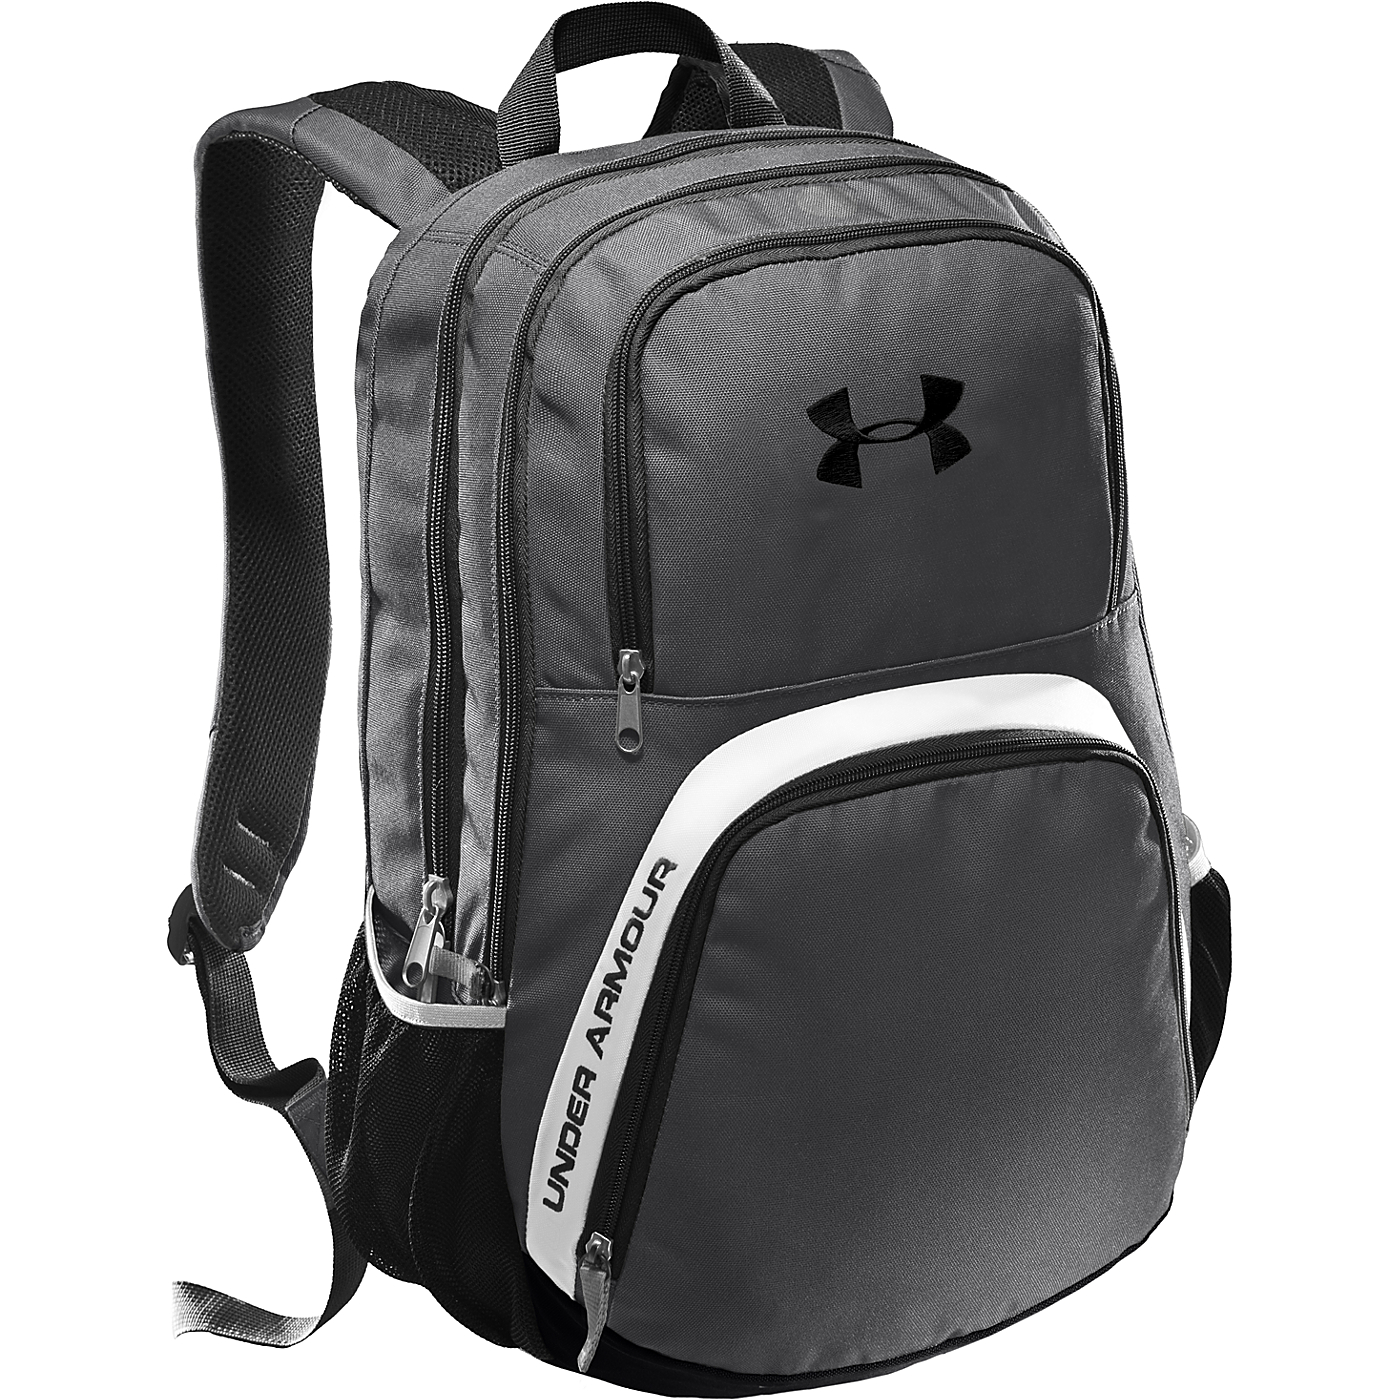 ad421e645d Under Armour PTH Victory Backpack View 7 Colors  54.99 Coupons Not ...